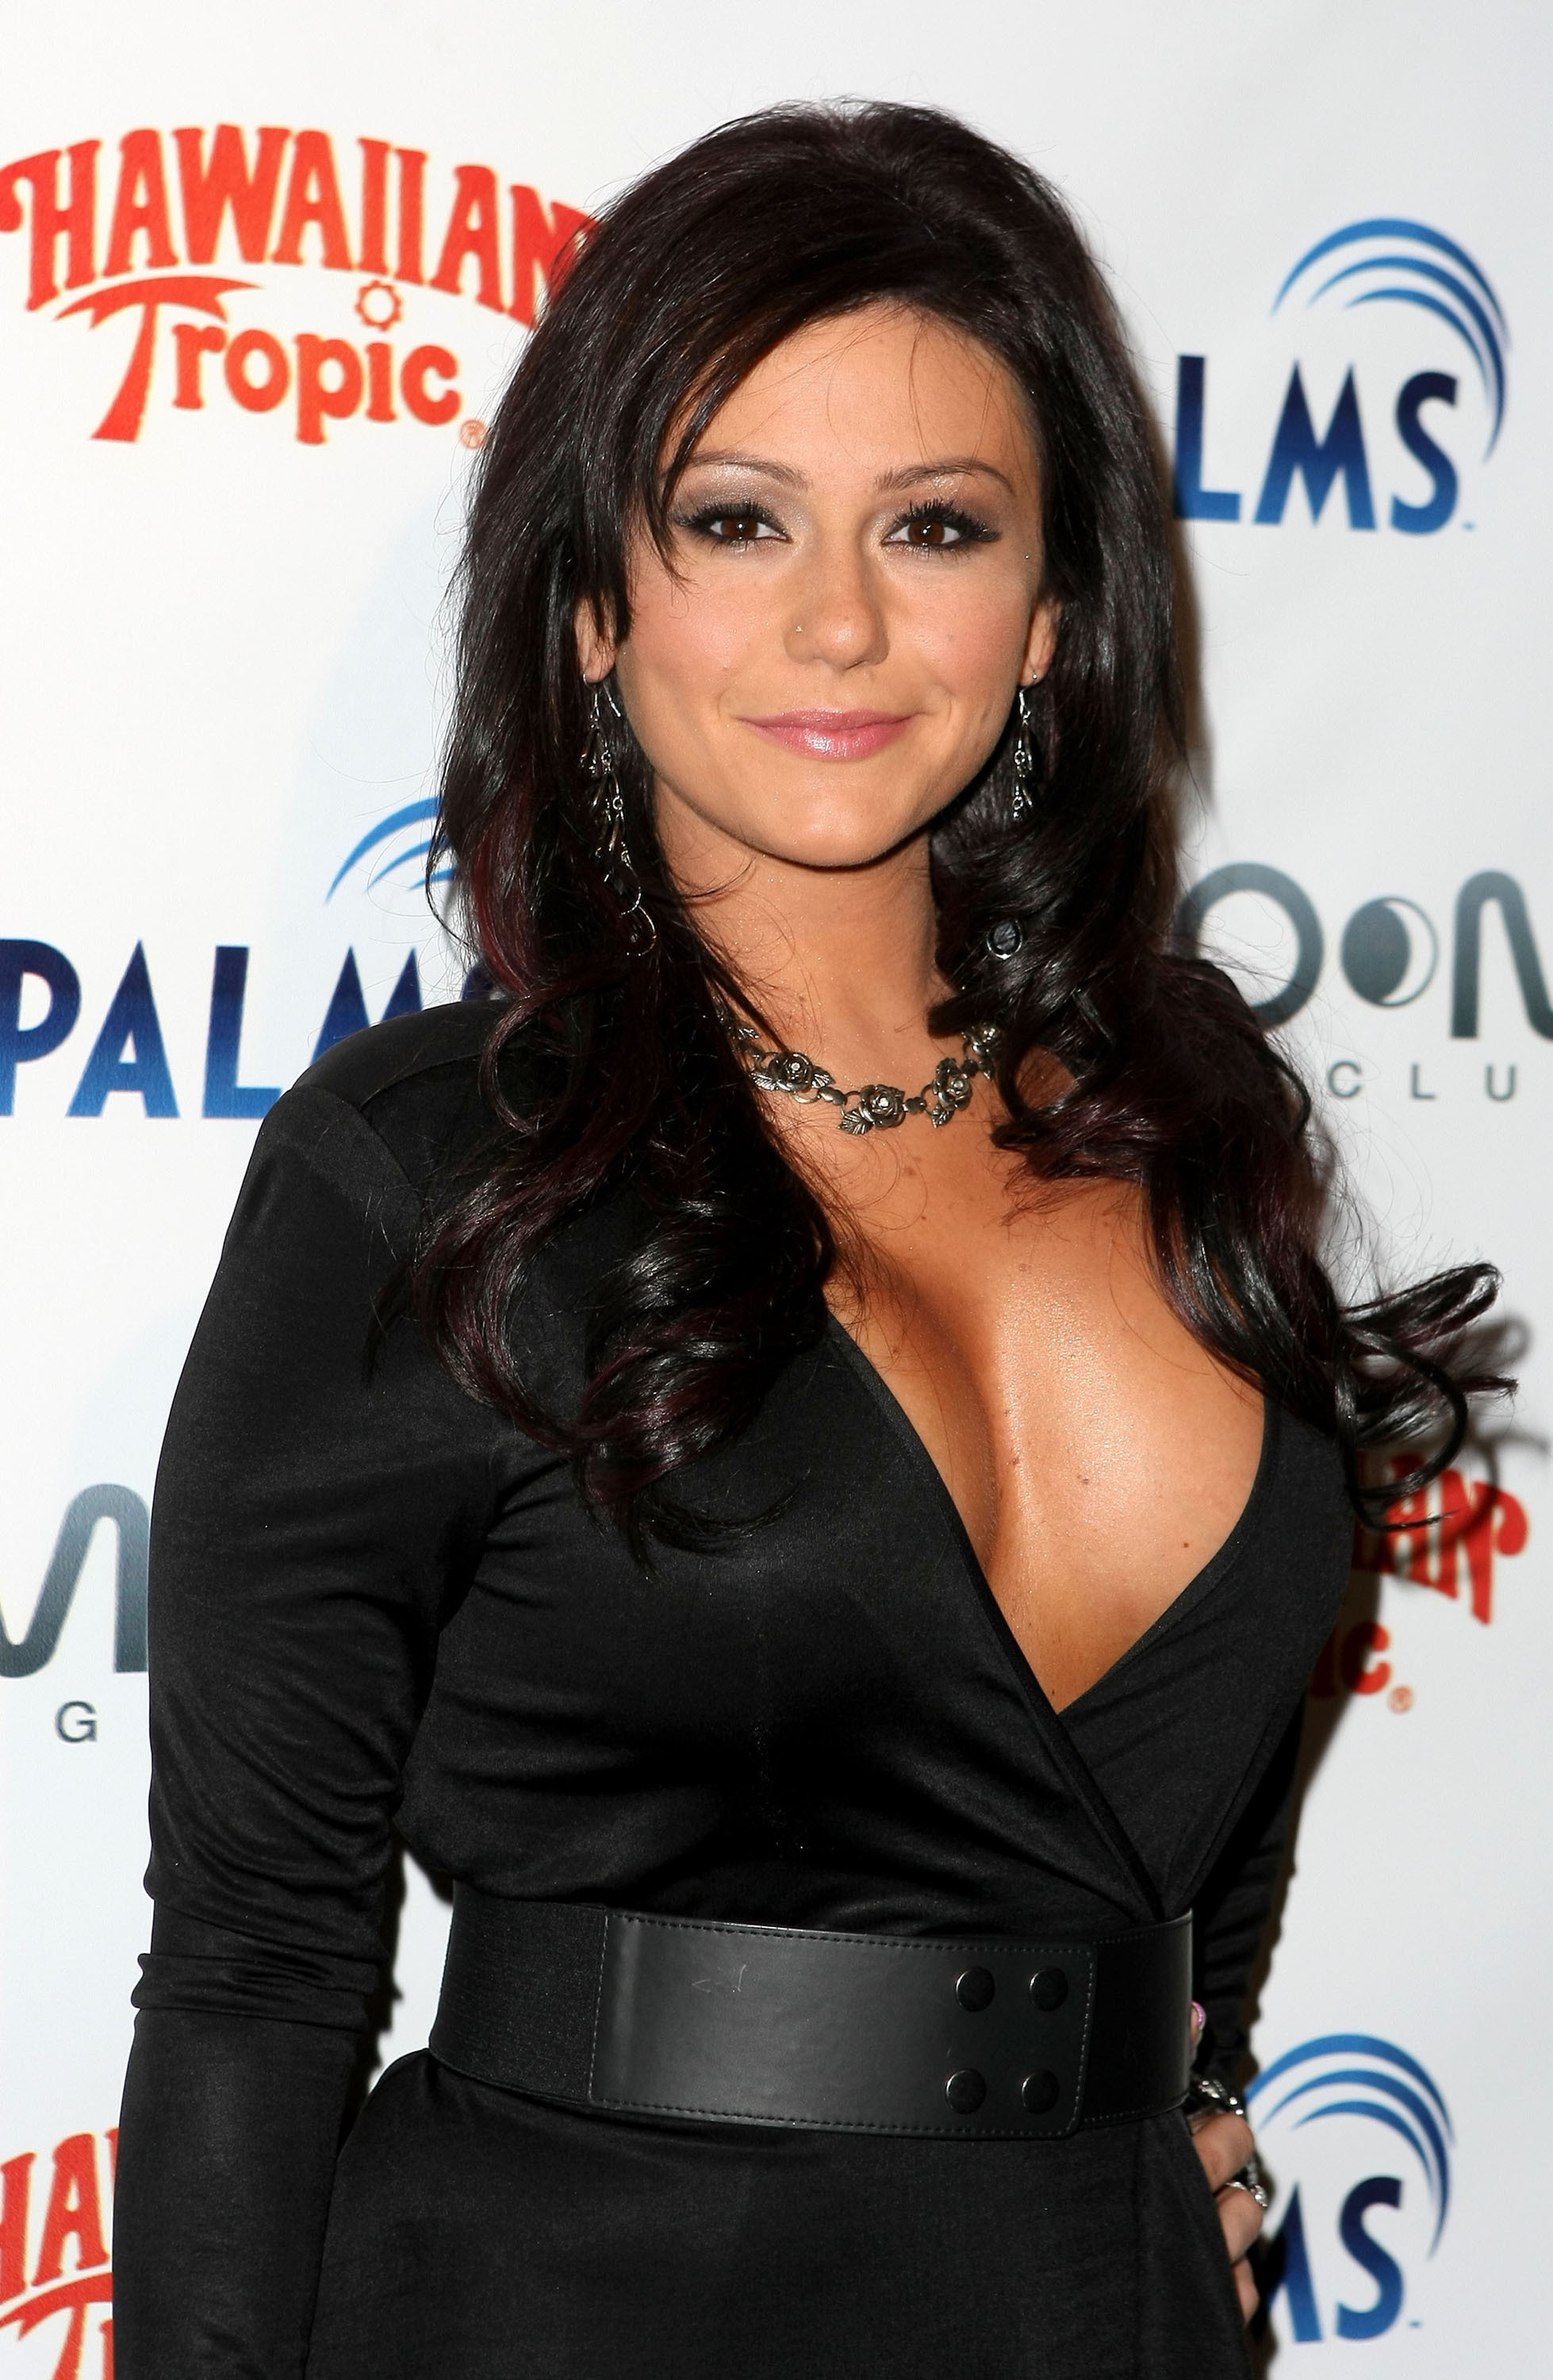 Jwoww Celebrity Plastic Surgery Before And After